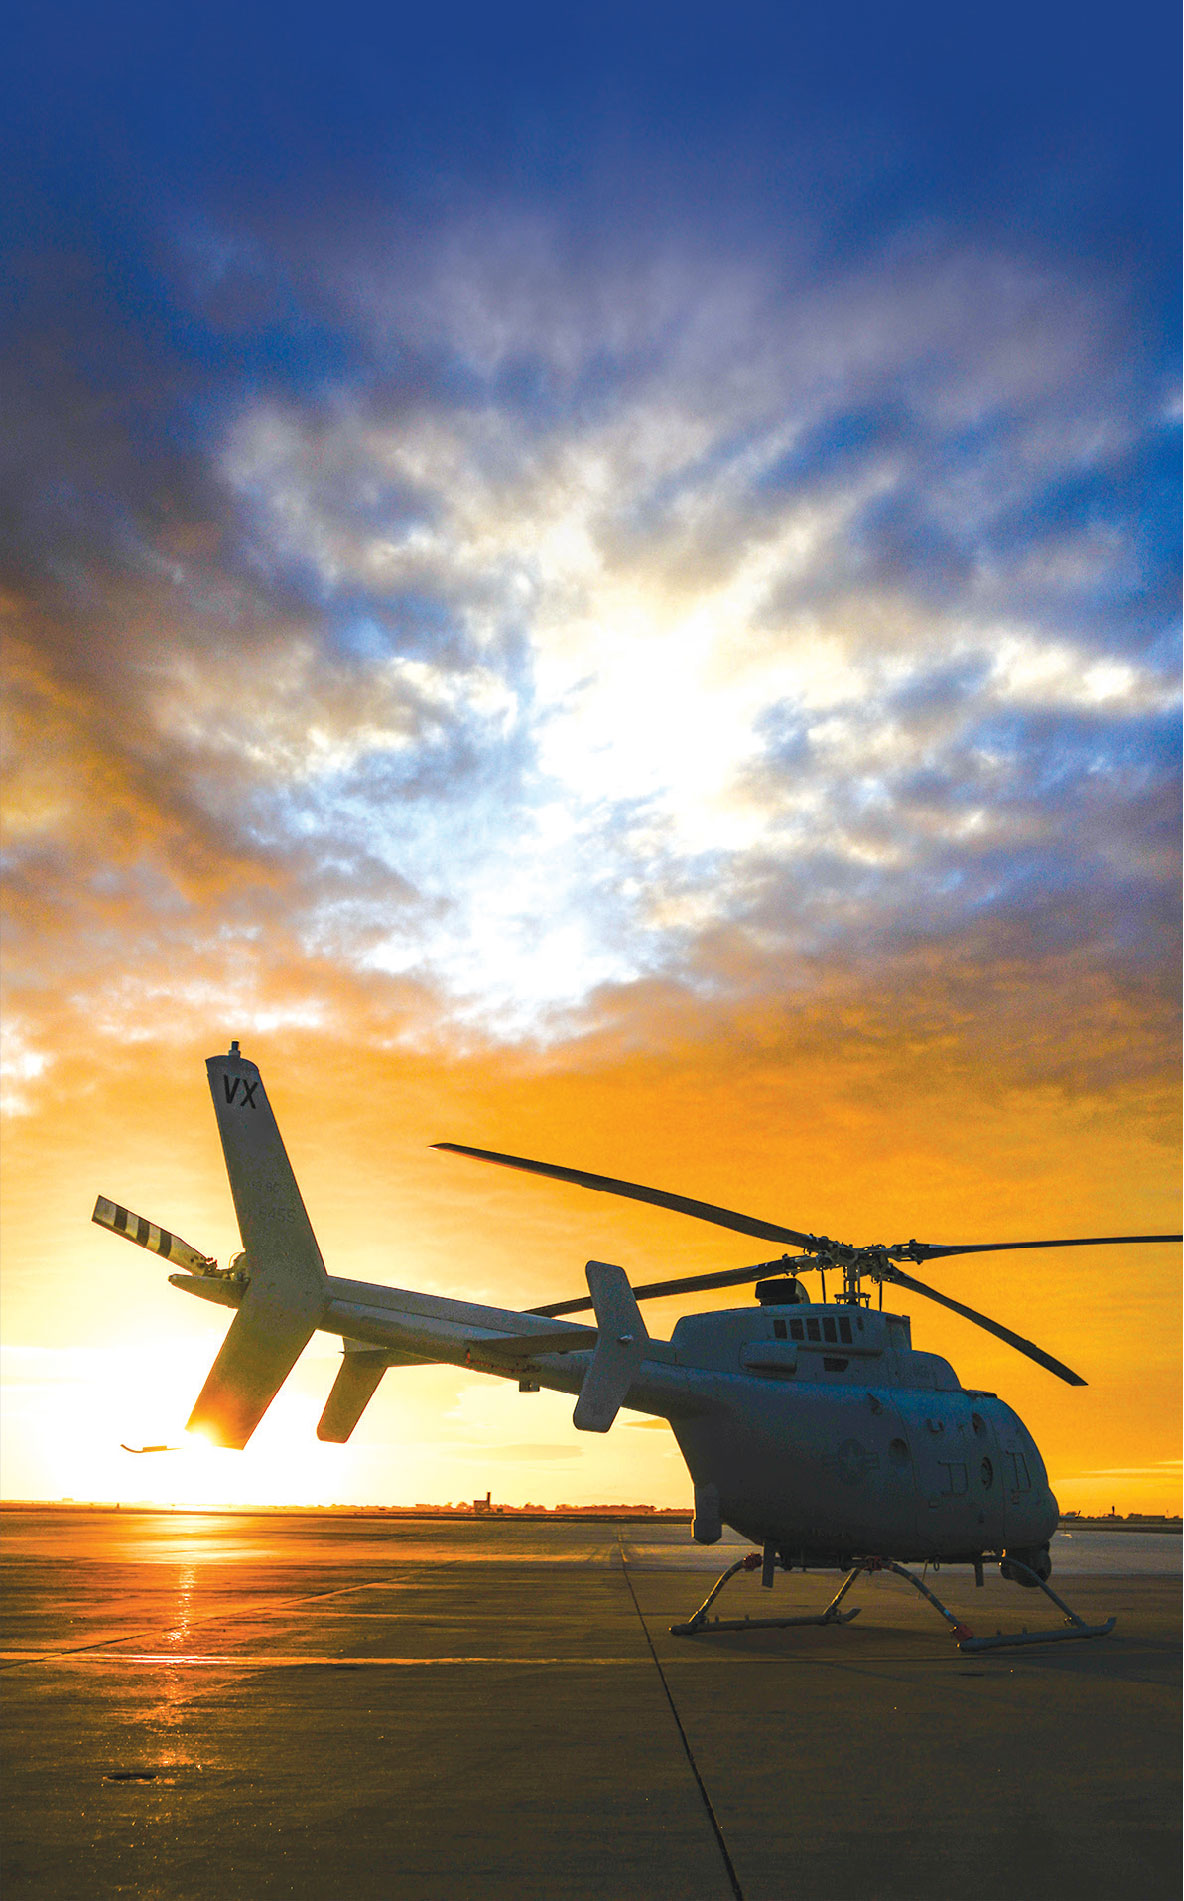 US Navy Receives First Operational MQ-8C Fire Scout